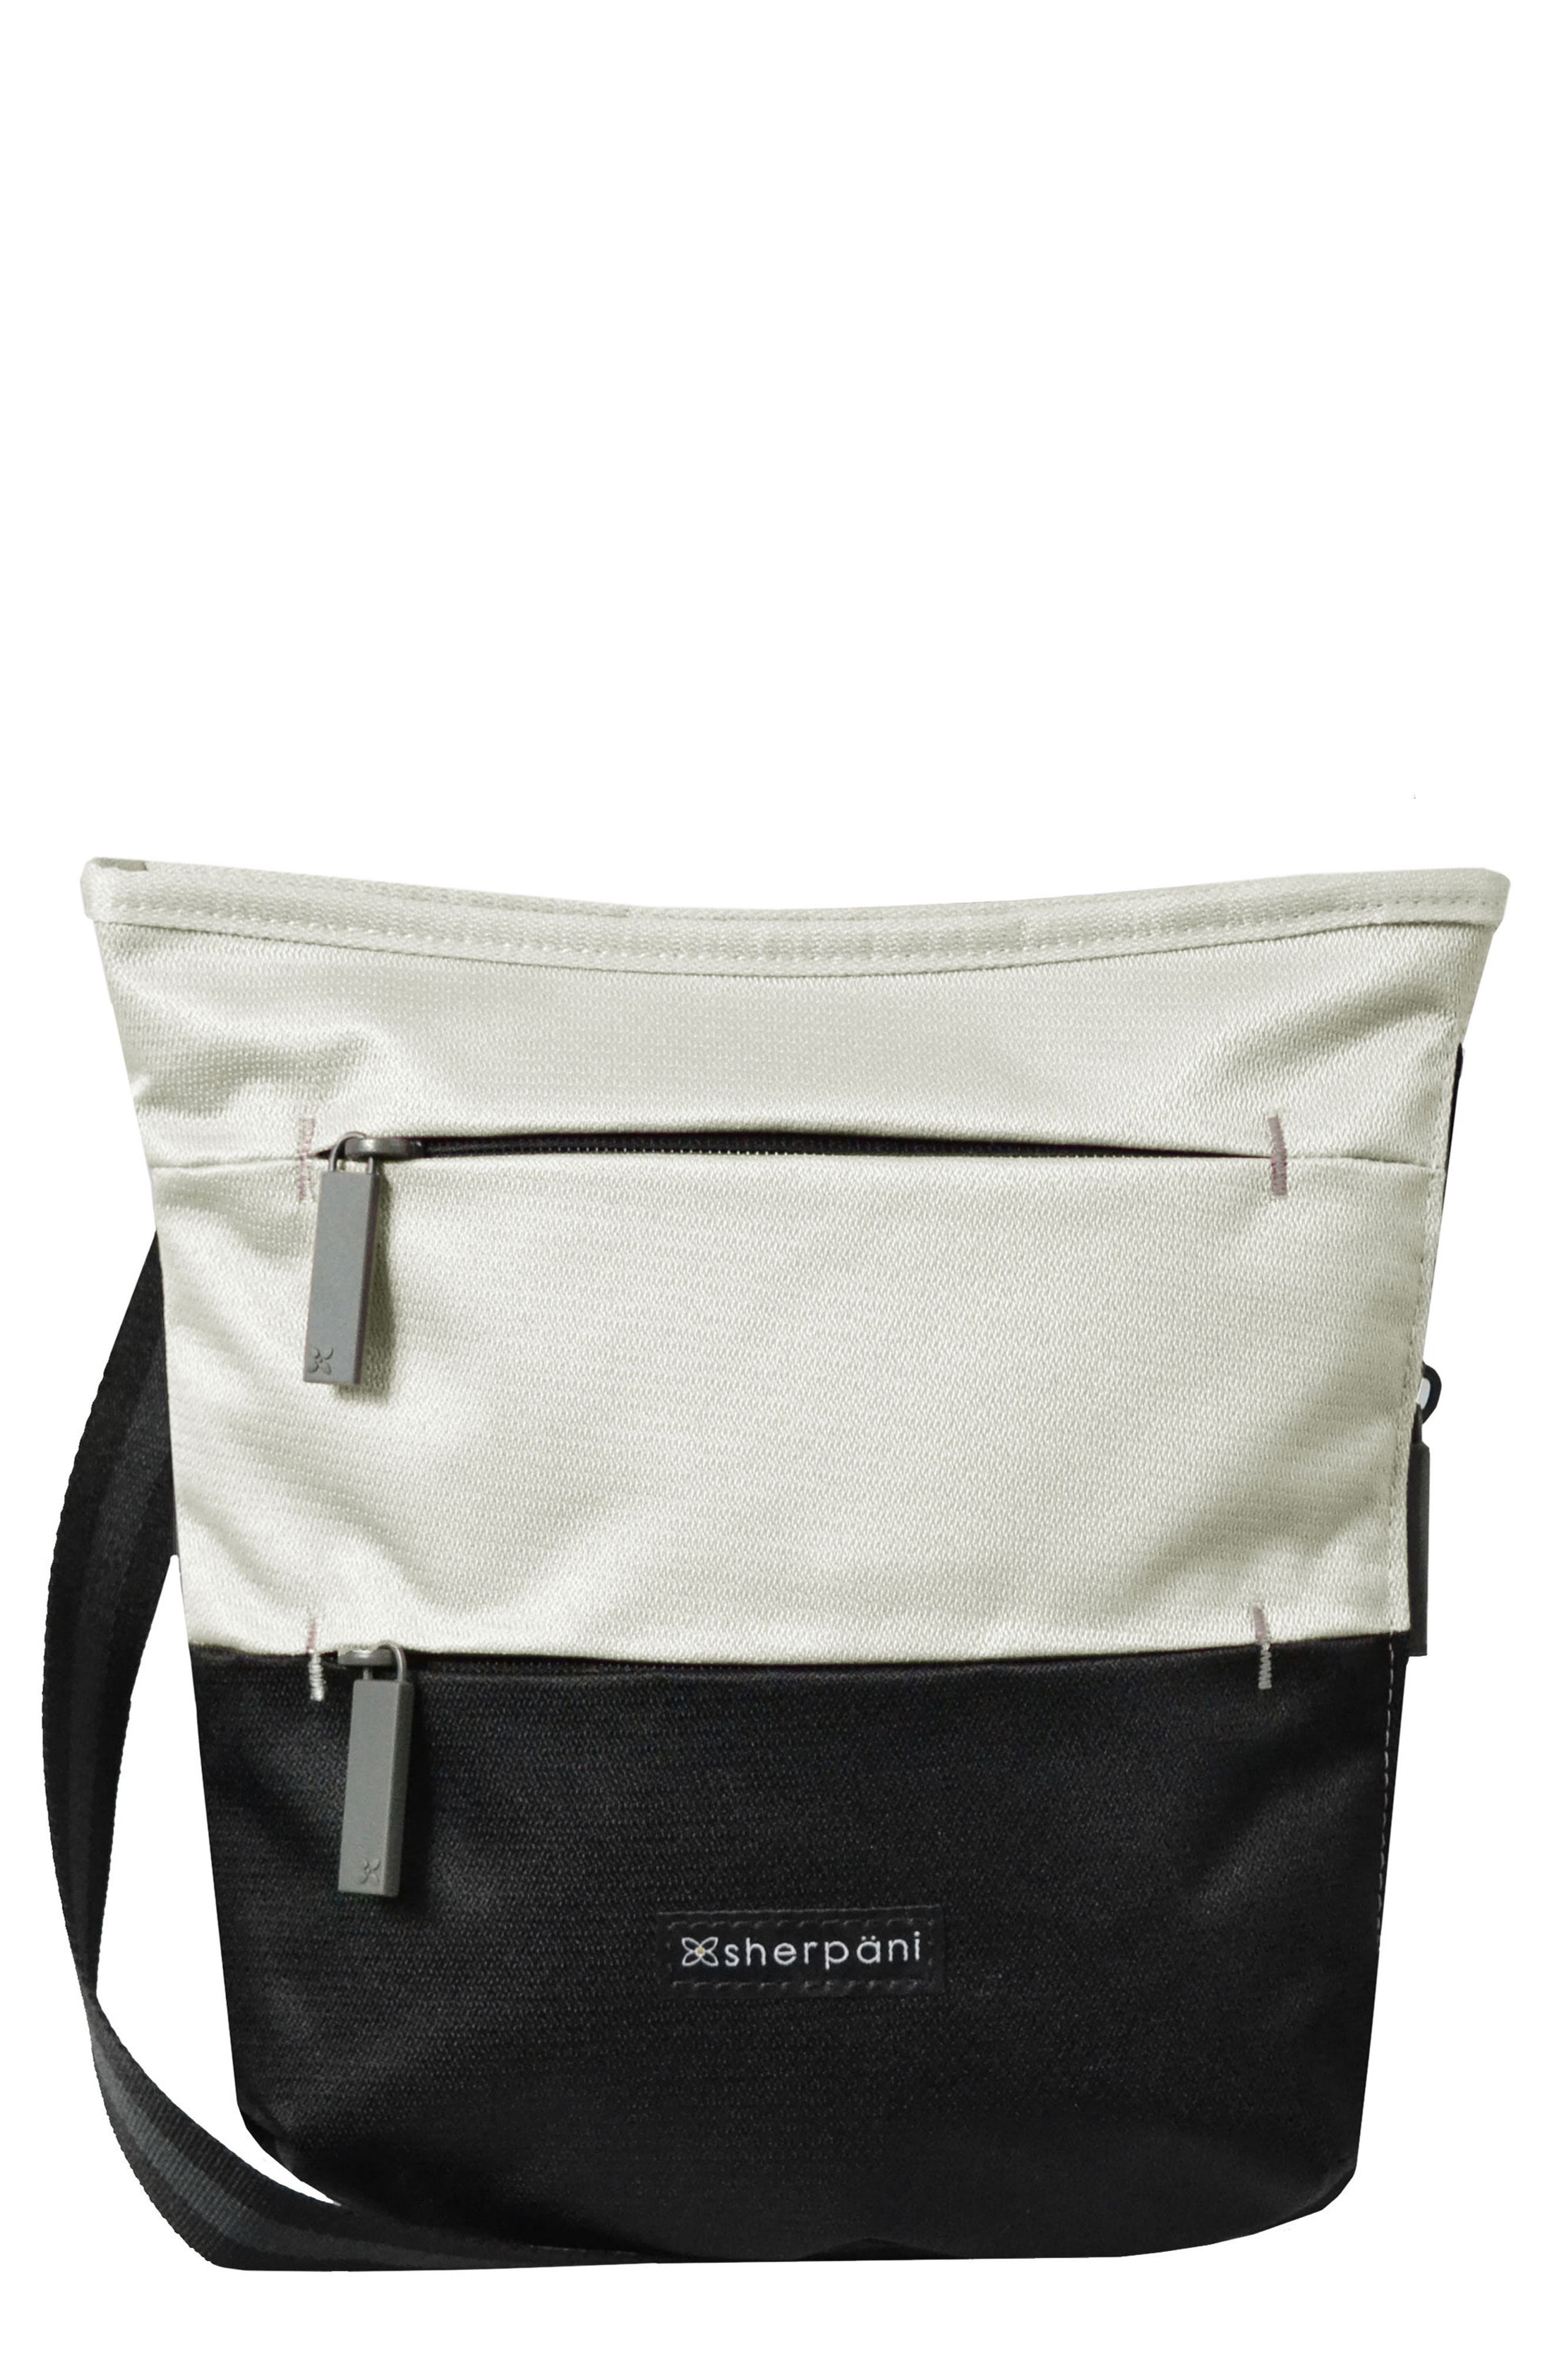 Sherpani Medium Sadie Crossbody Bag